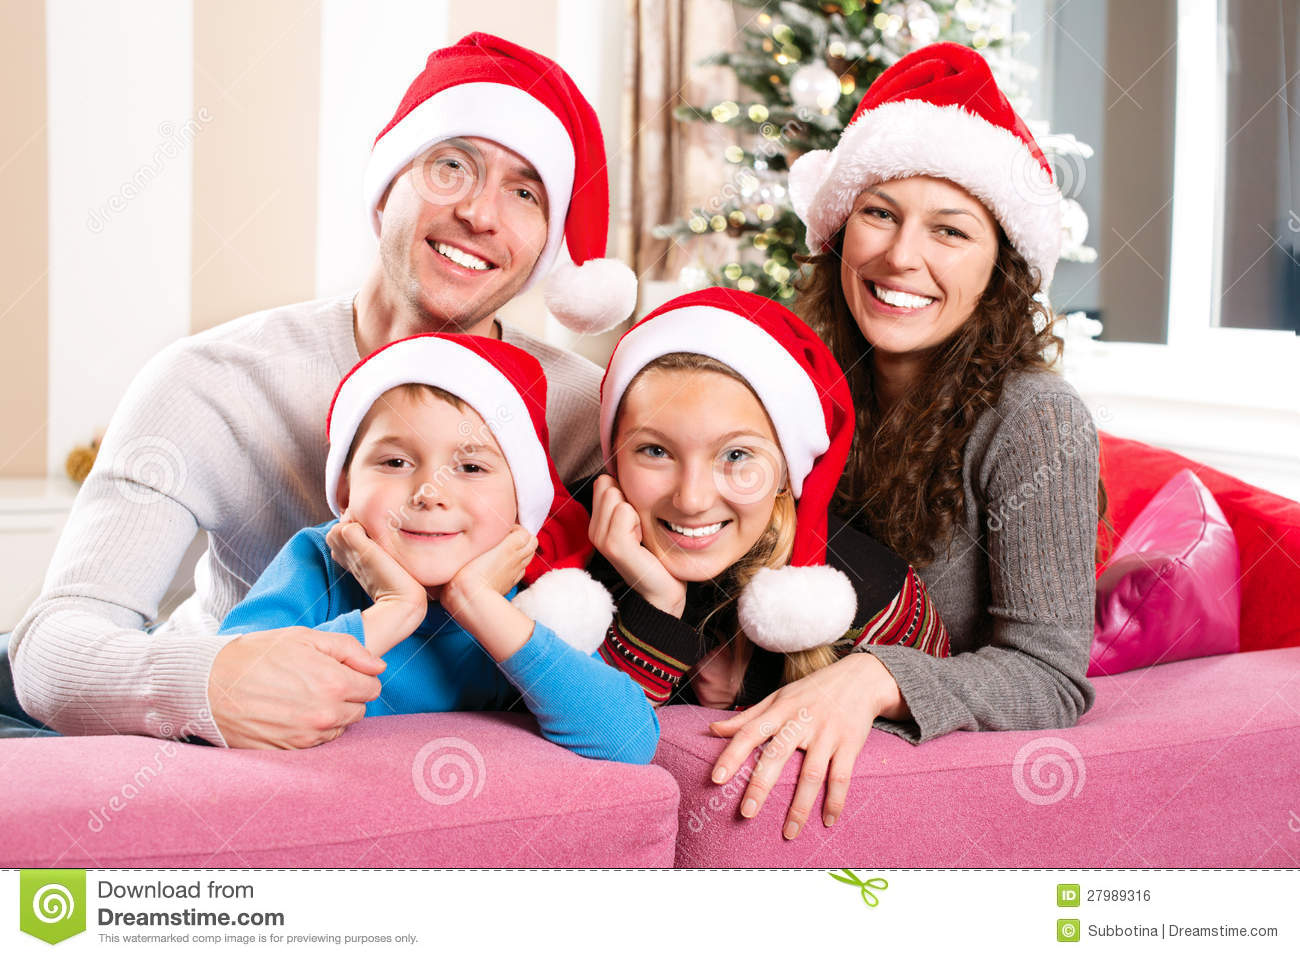 Christmas Family with Kids